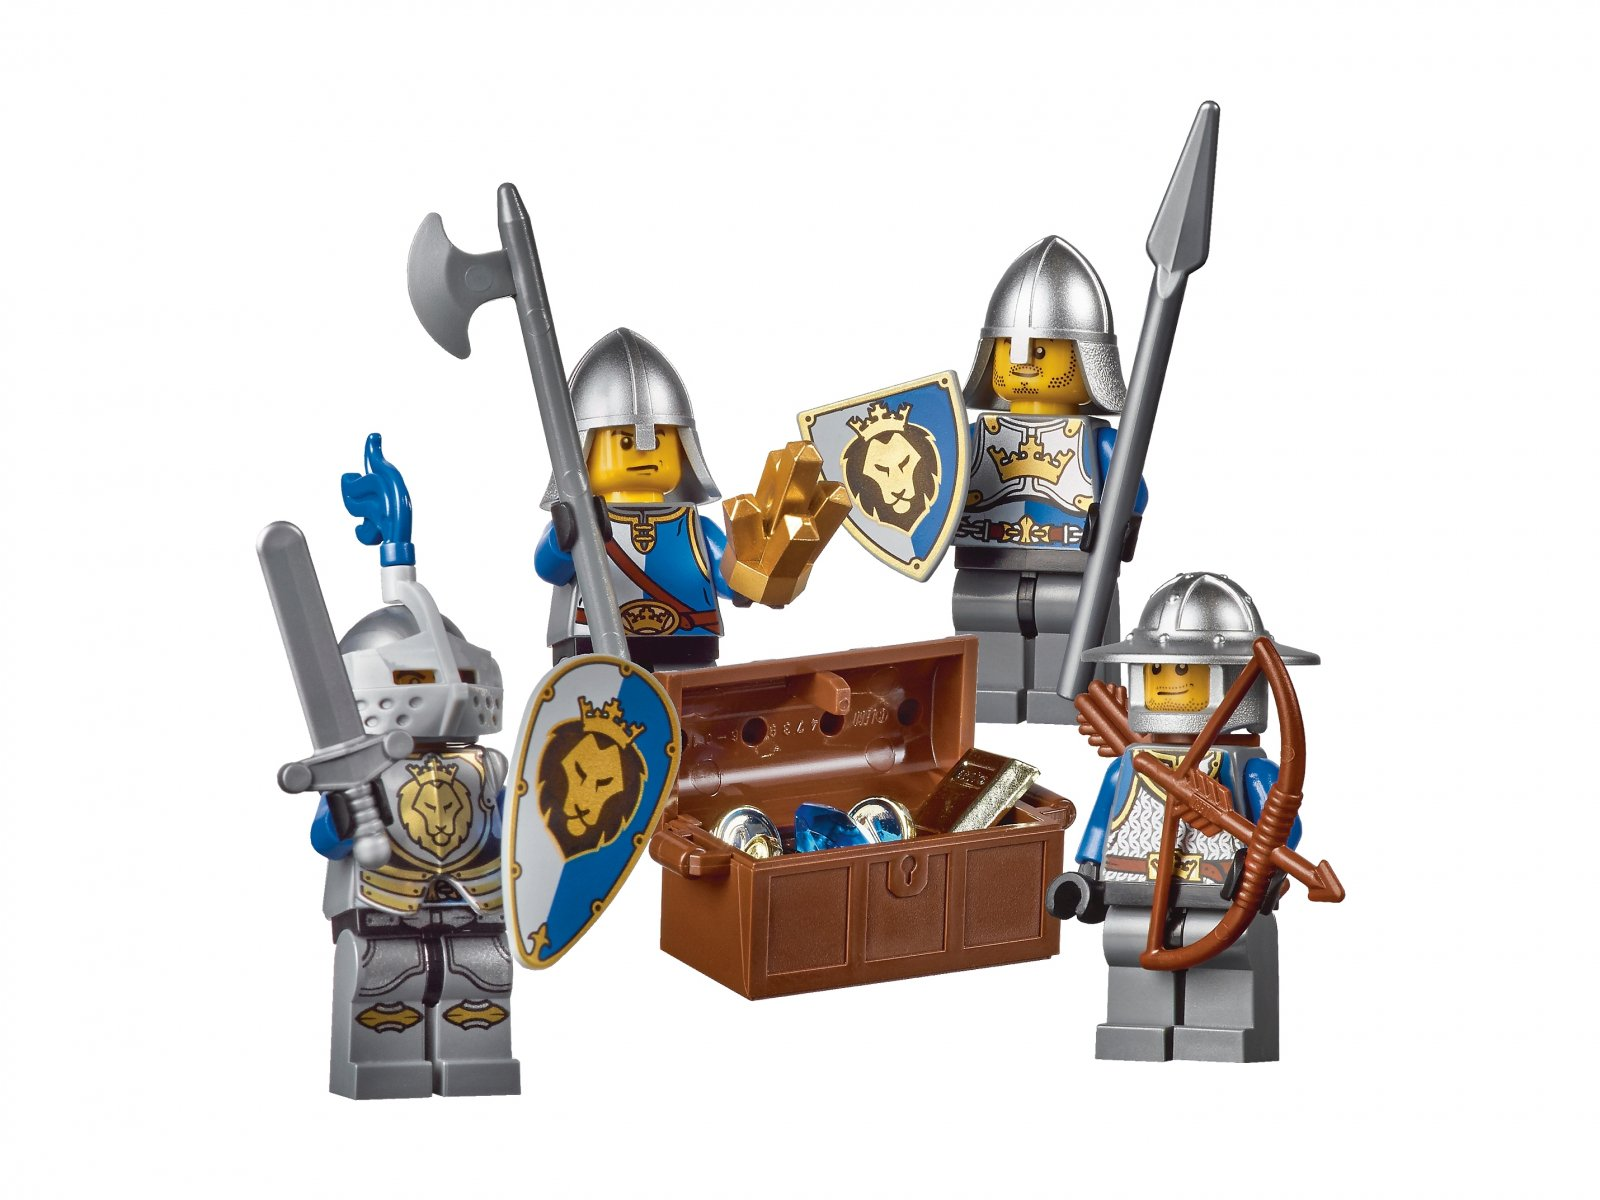 LEGO 850888 Castle Knights Accessory Set